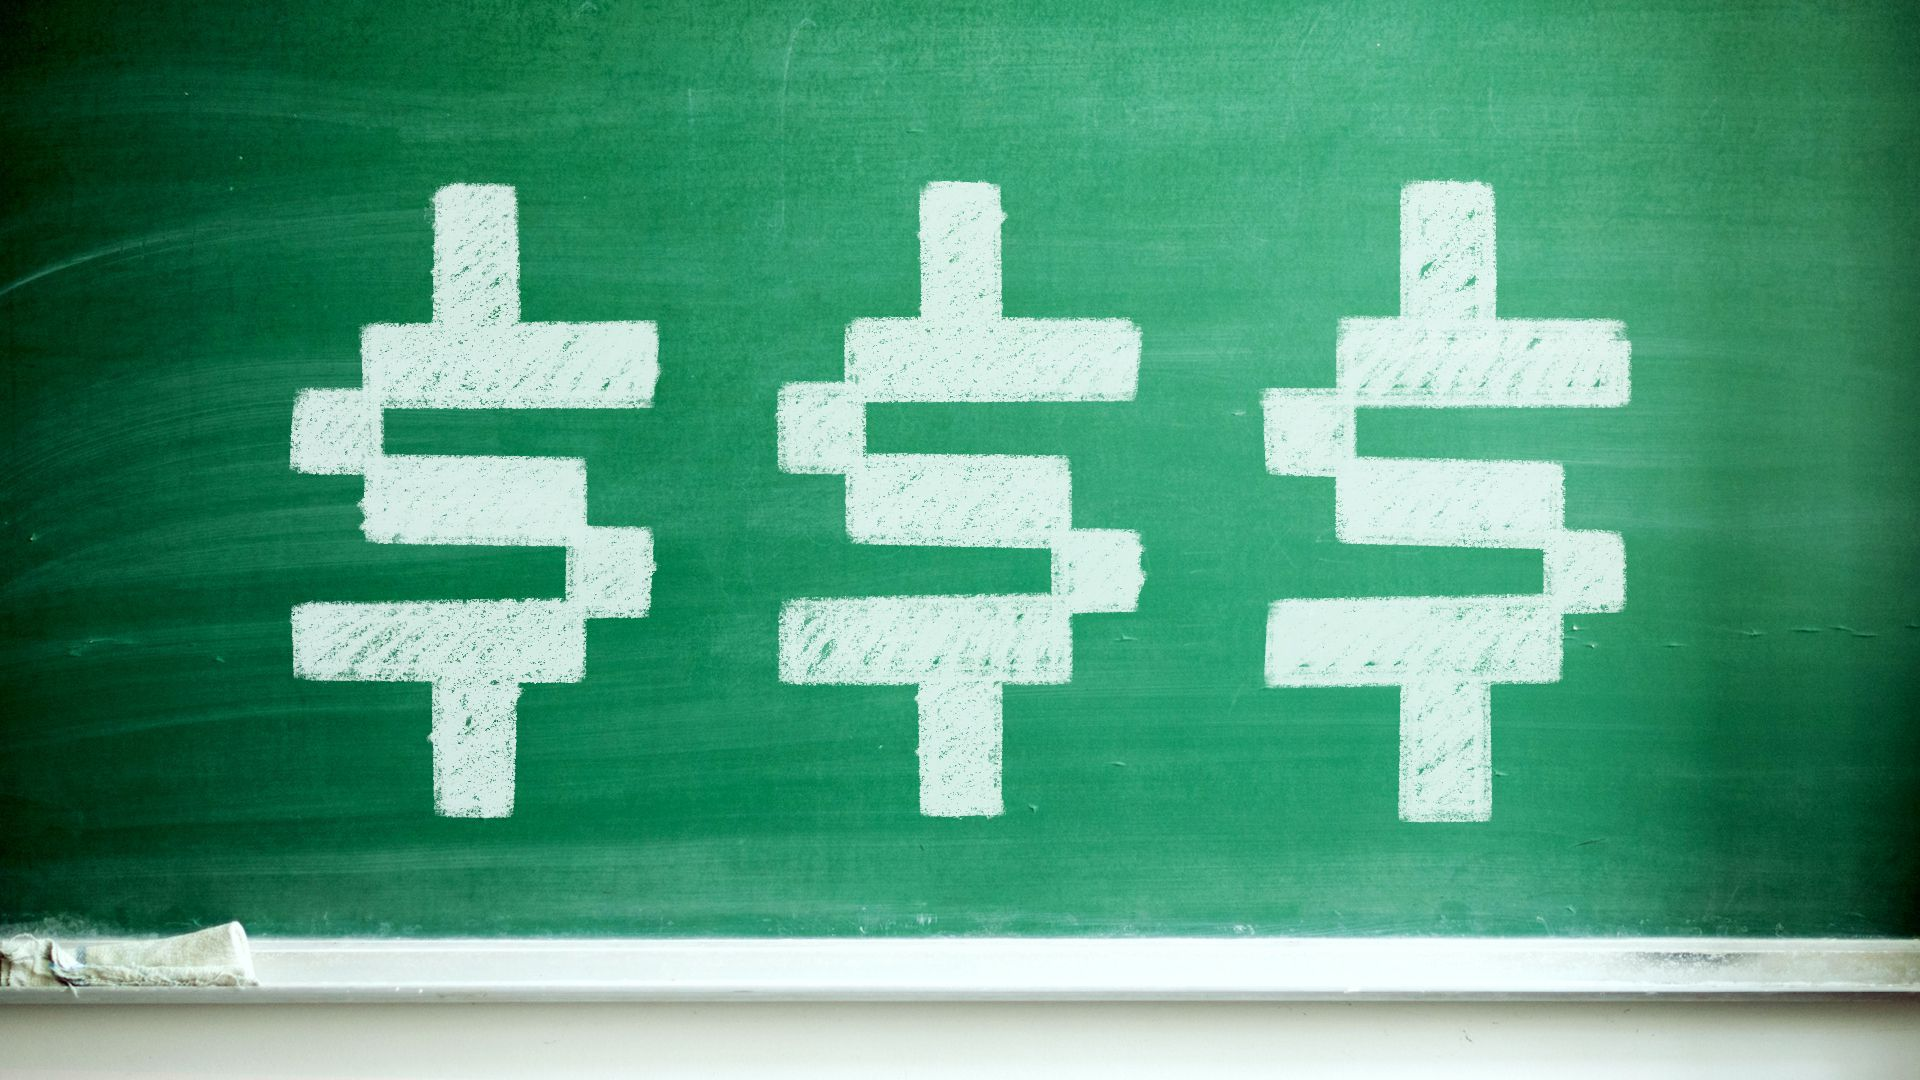 Illustration of a chalkboard with three digital-style dollar signs on it.